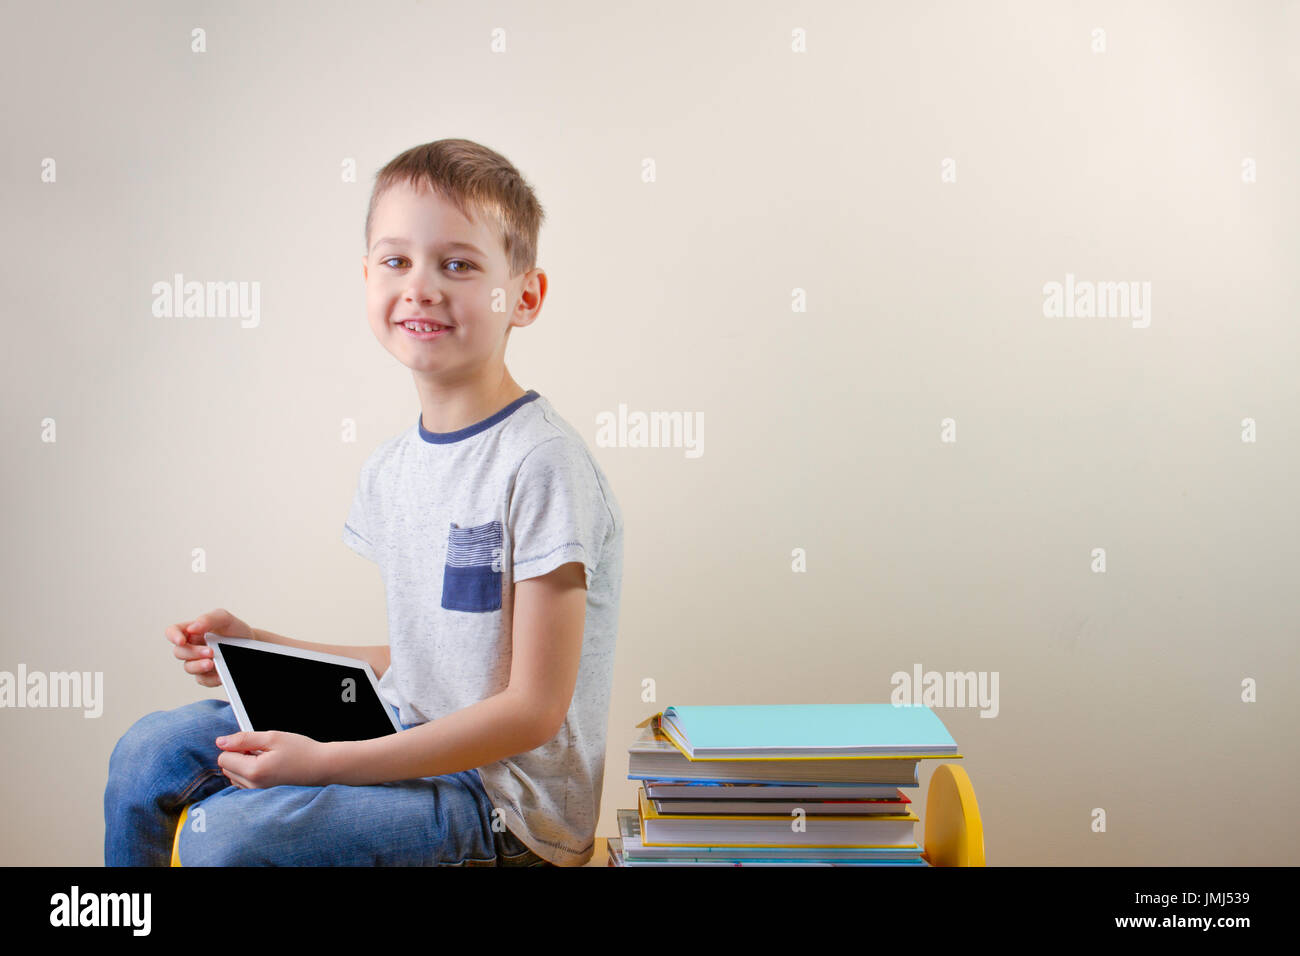 Smiling boy with tablet computer and stack of books near him - Stock Image